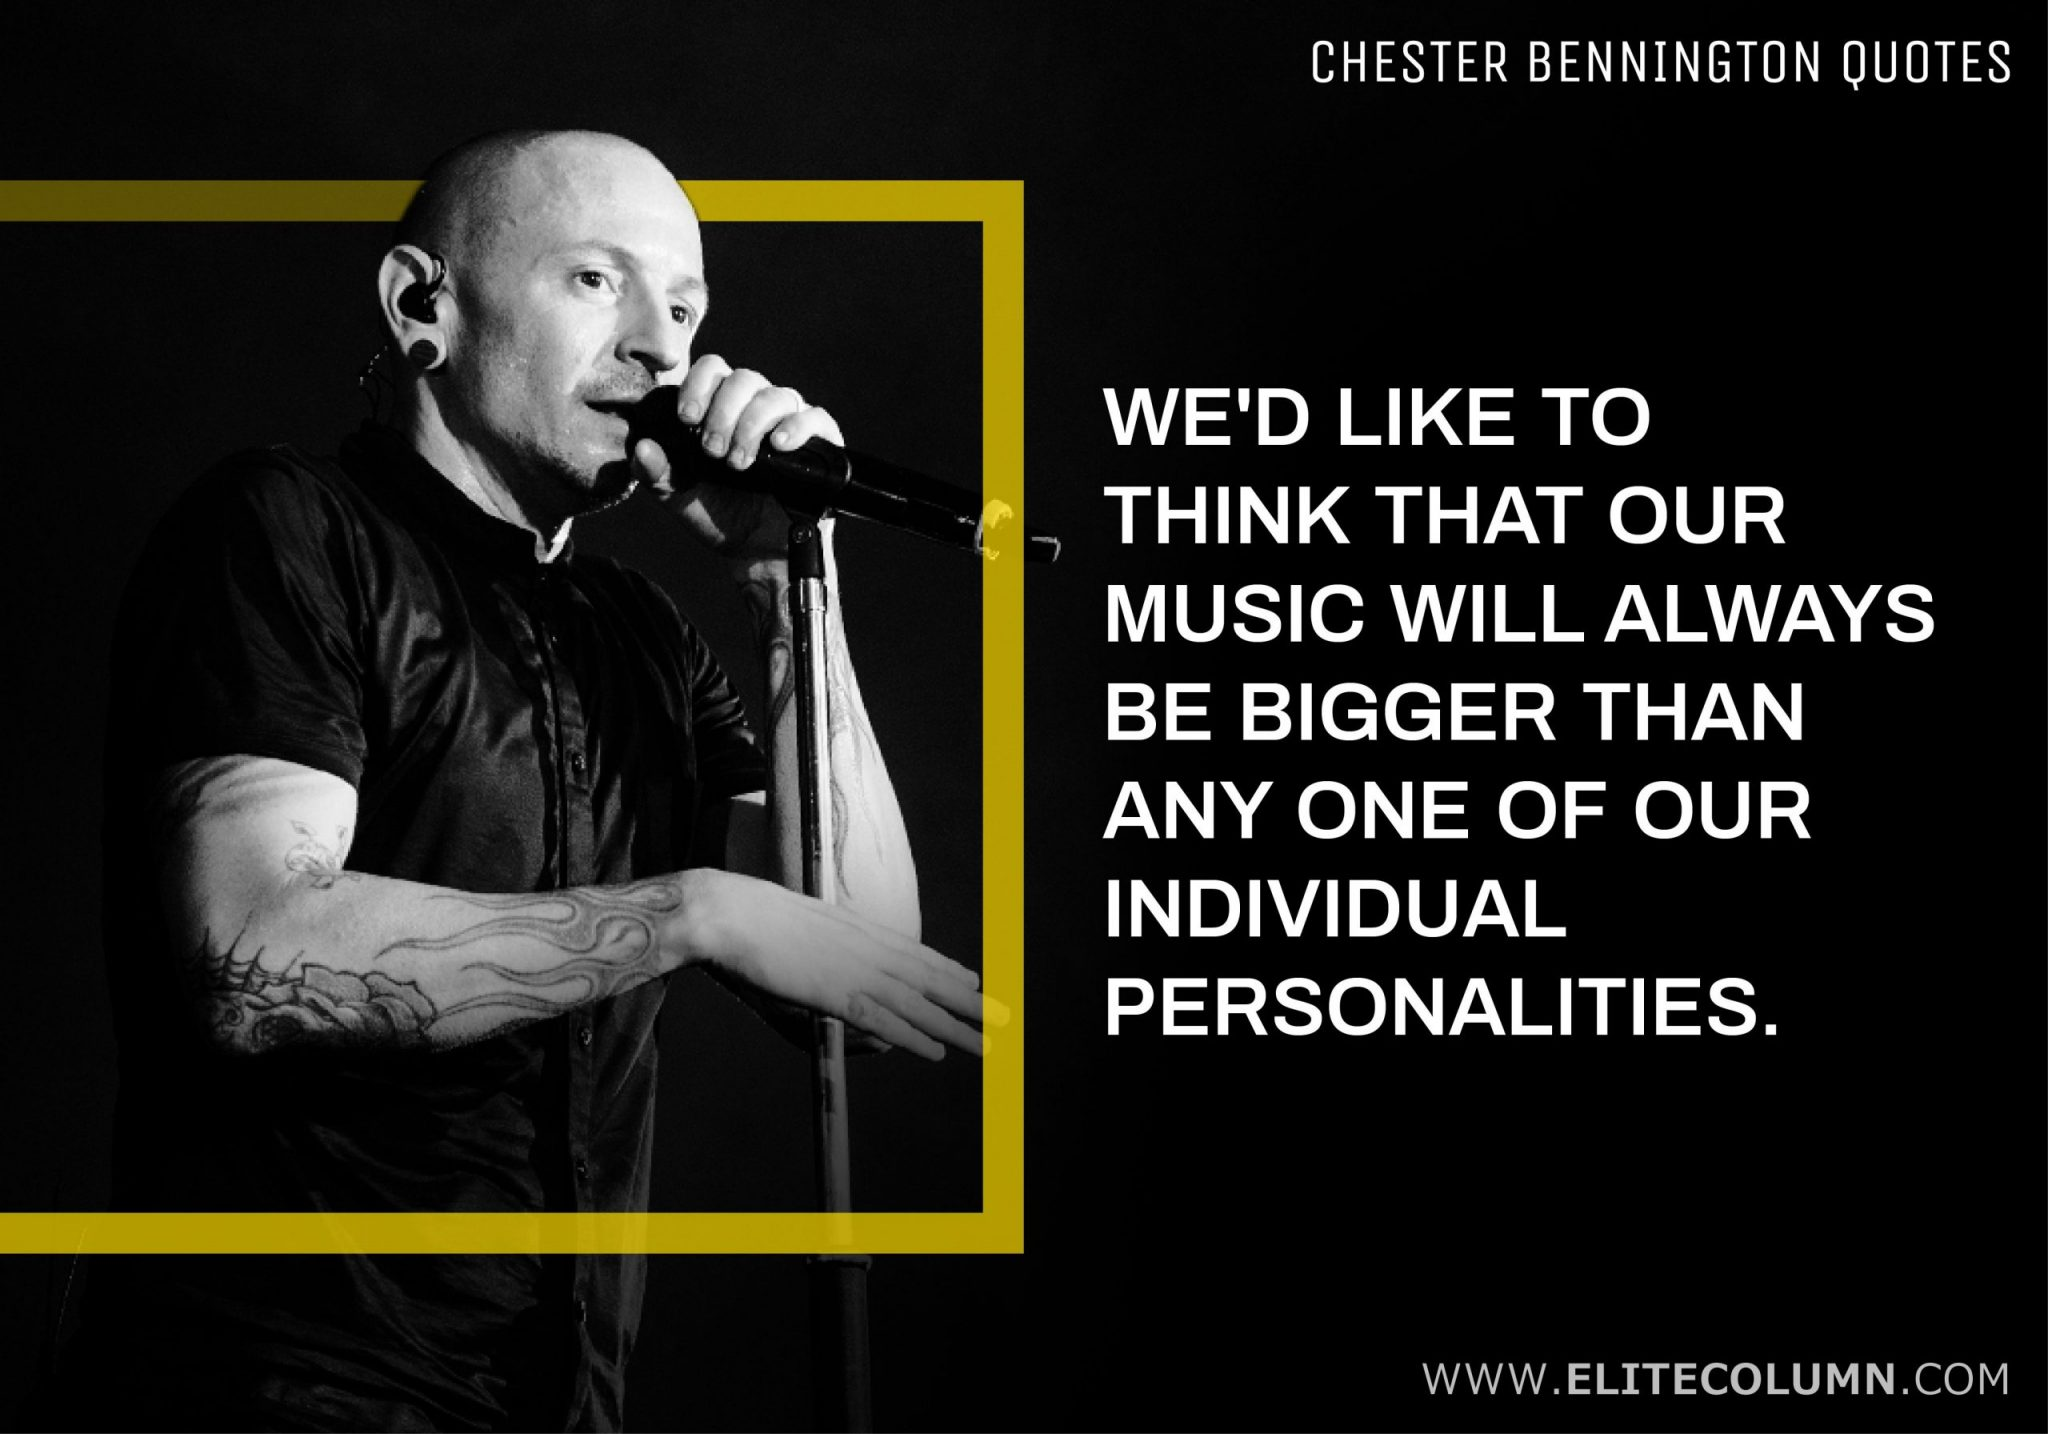 Chester Bennington Quotes (6)